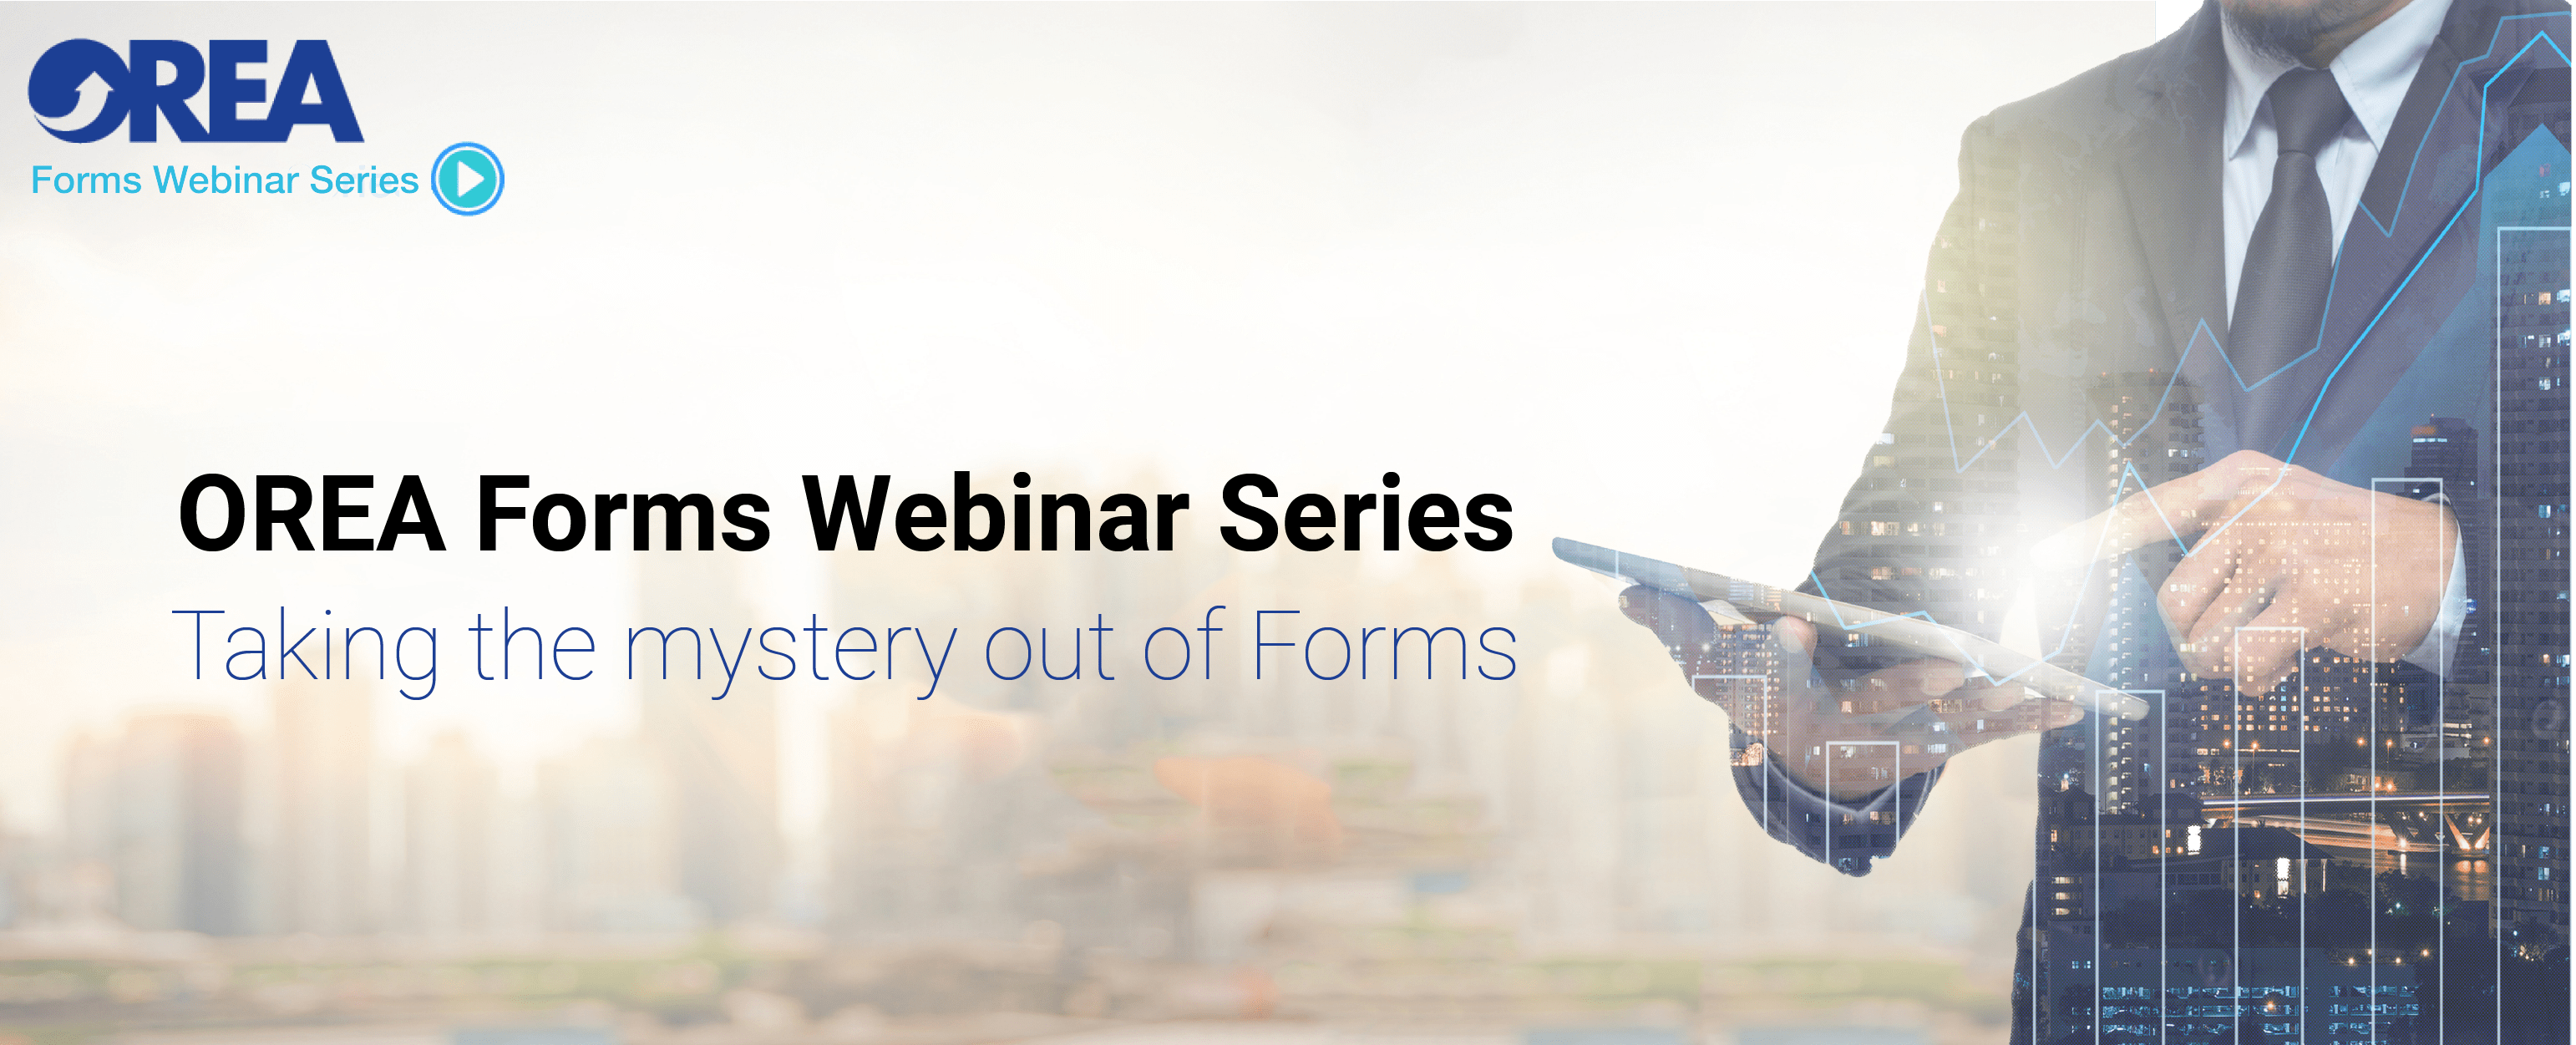 OREA Forms Webinar Series - Taking the mystery out of Forms